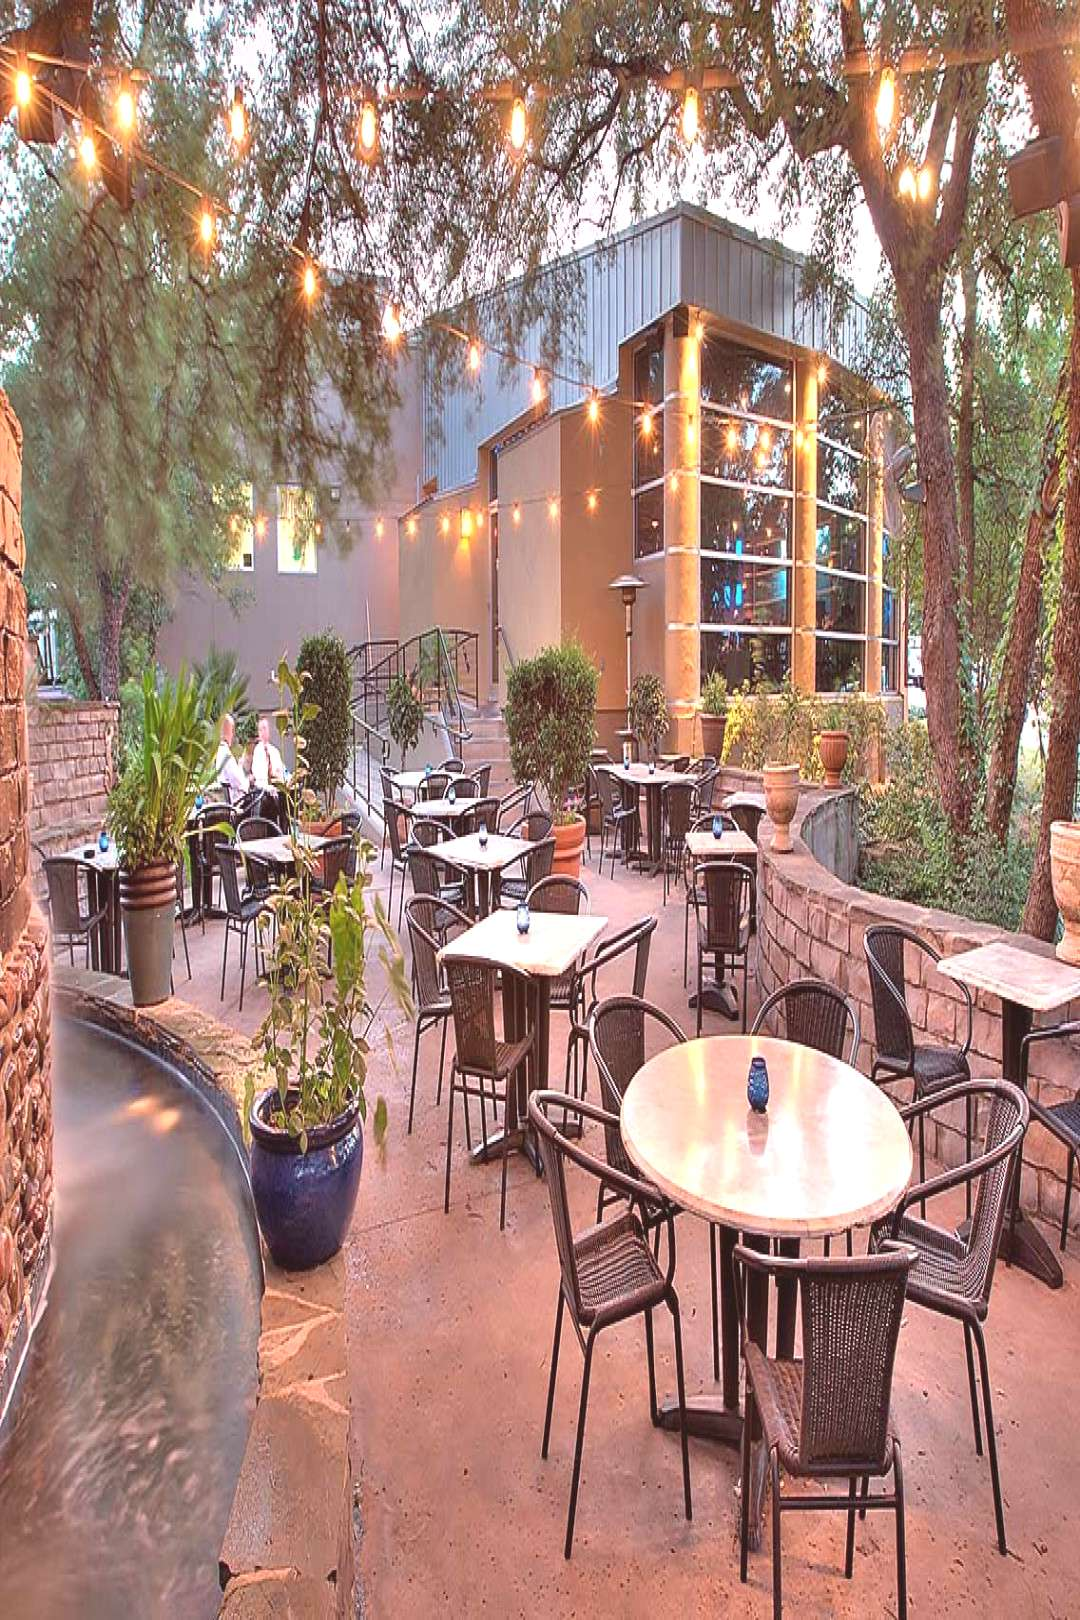 83 reference of outdoor patio restaurants san diego outdoor patio restaurants san diego-#outdoor Pl